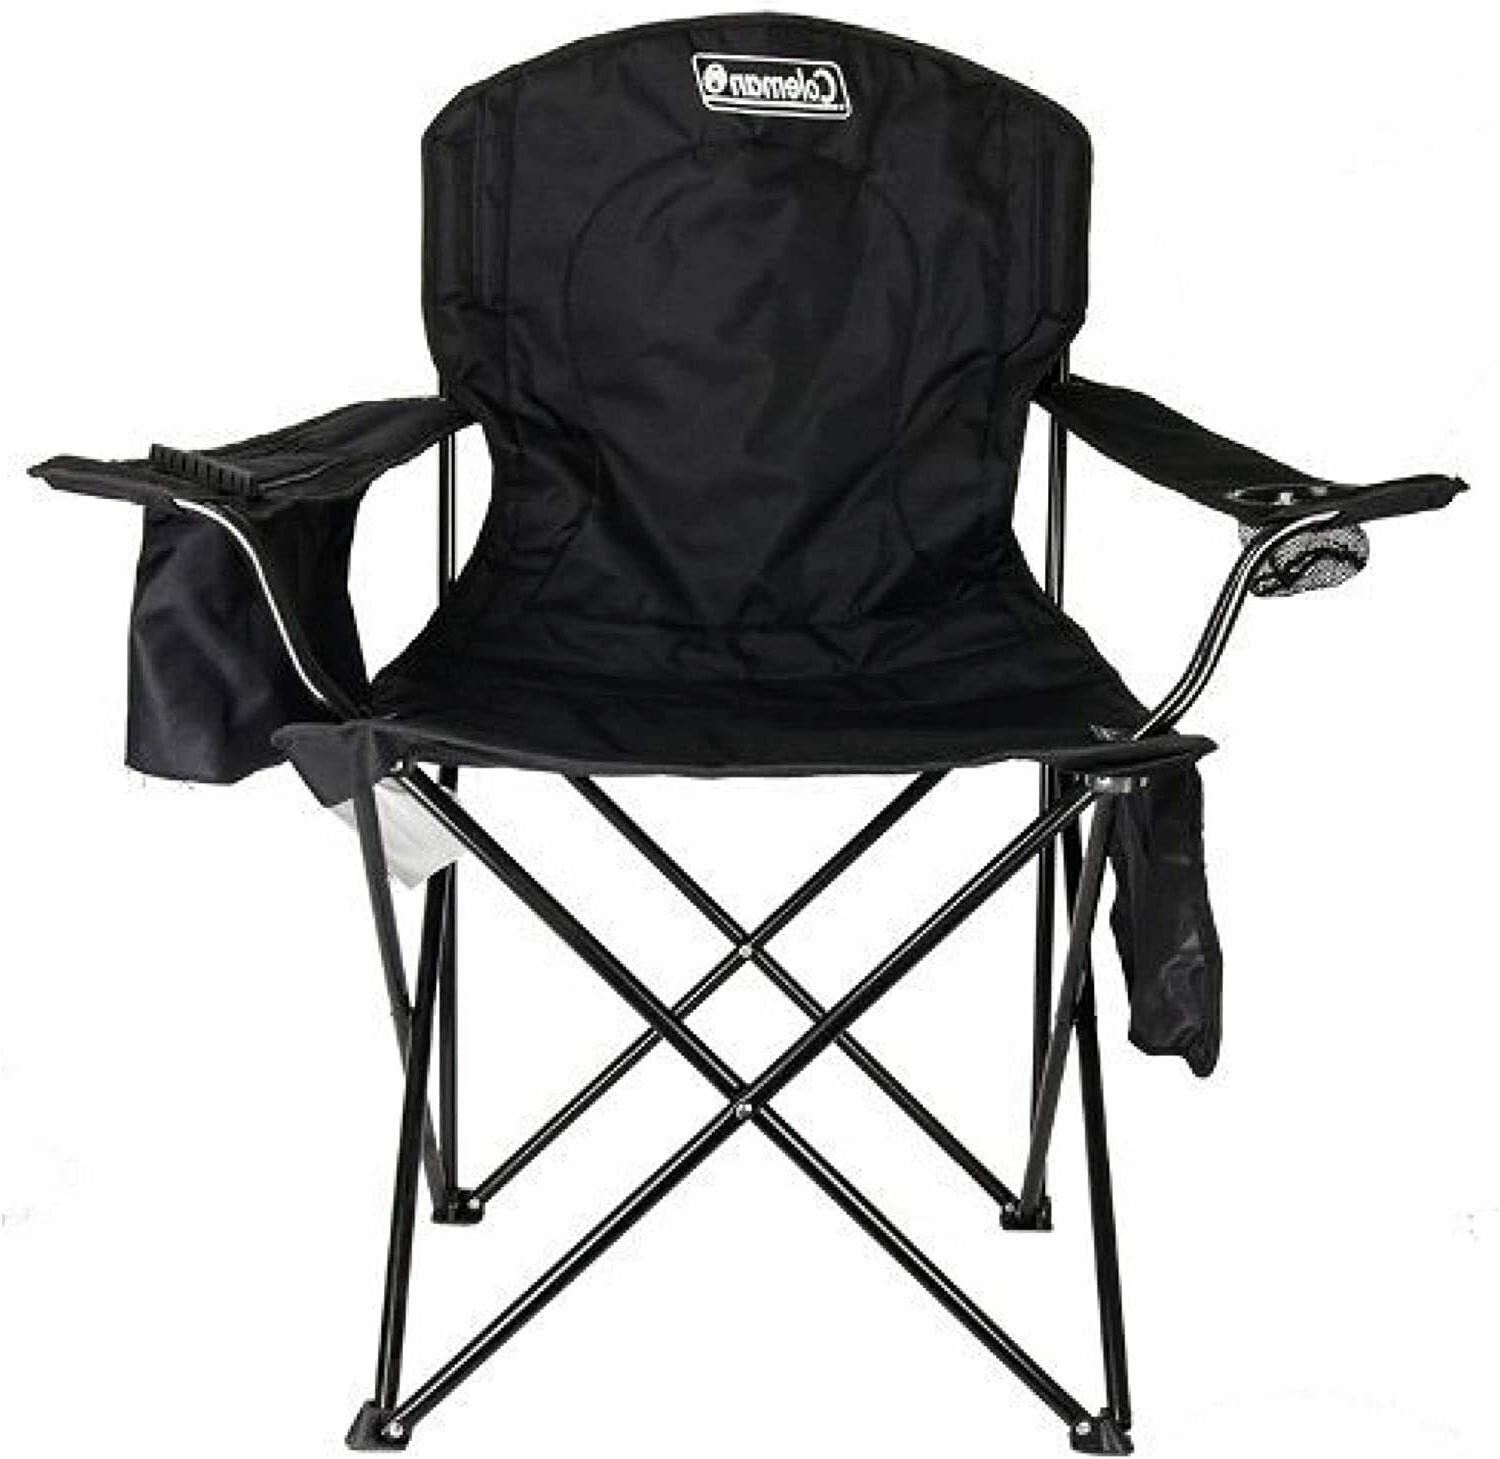 Coleman Camping Chair with Built-In 4-Can Cooler, Black